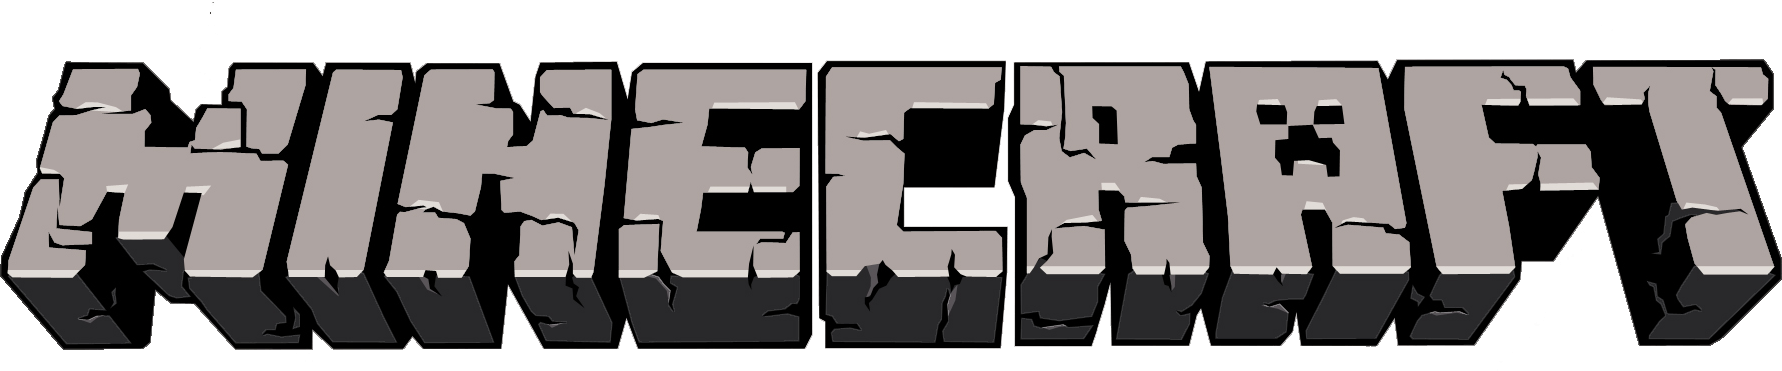 Hq Minecraft Png Transparent Minecraft Png Images Pluspng